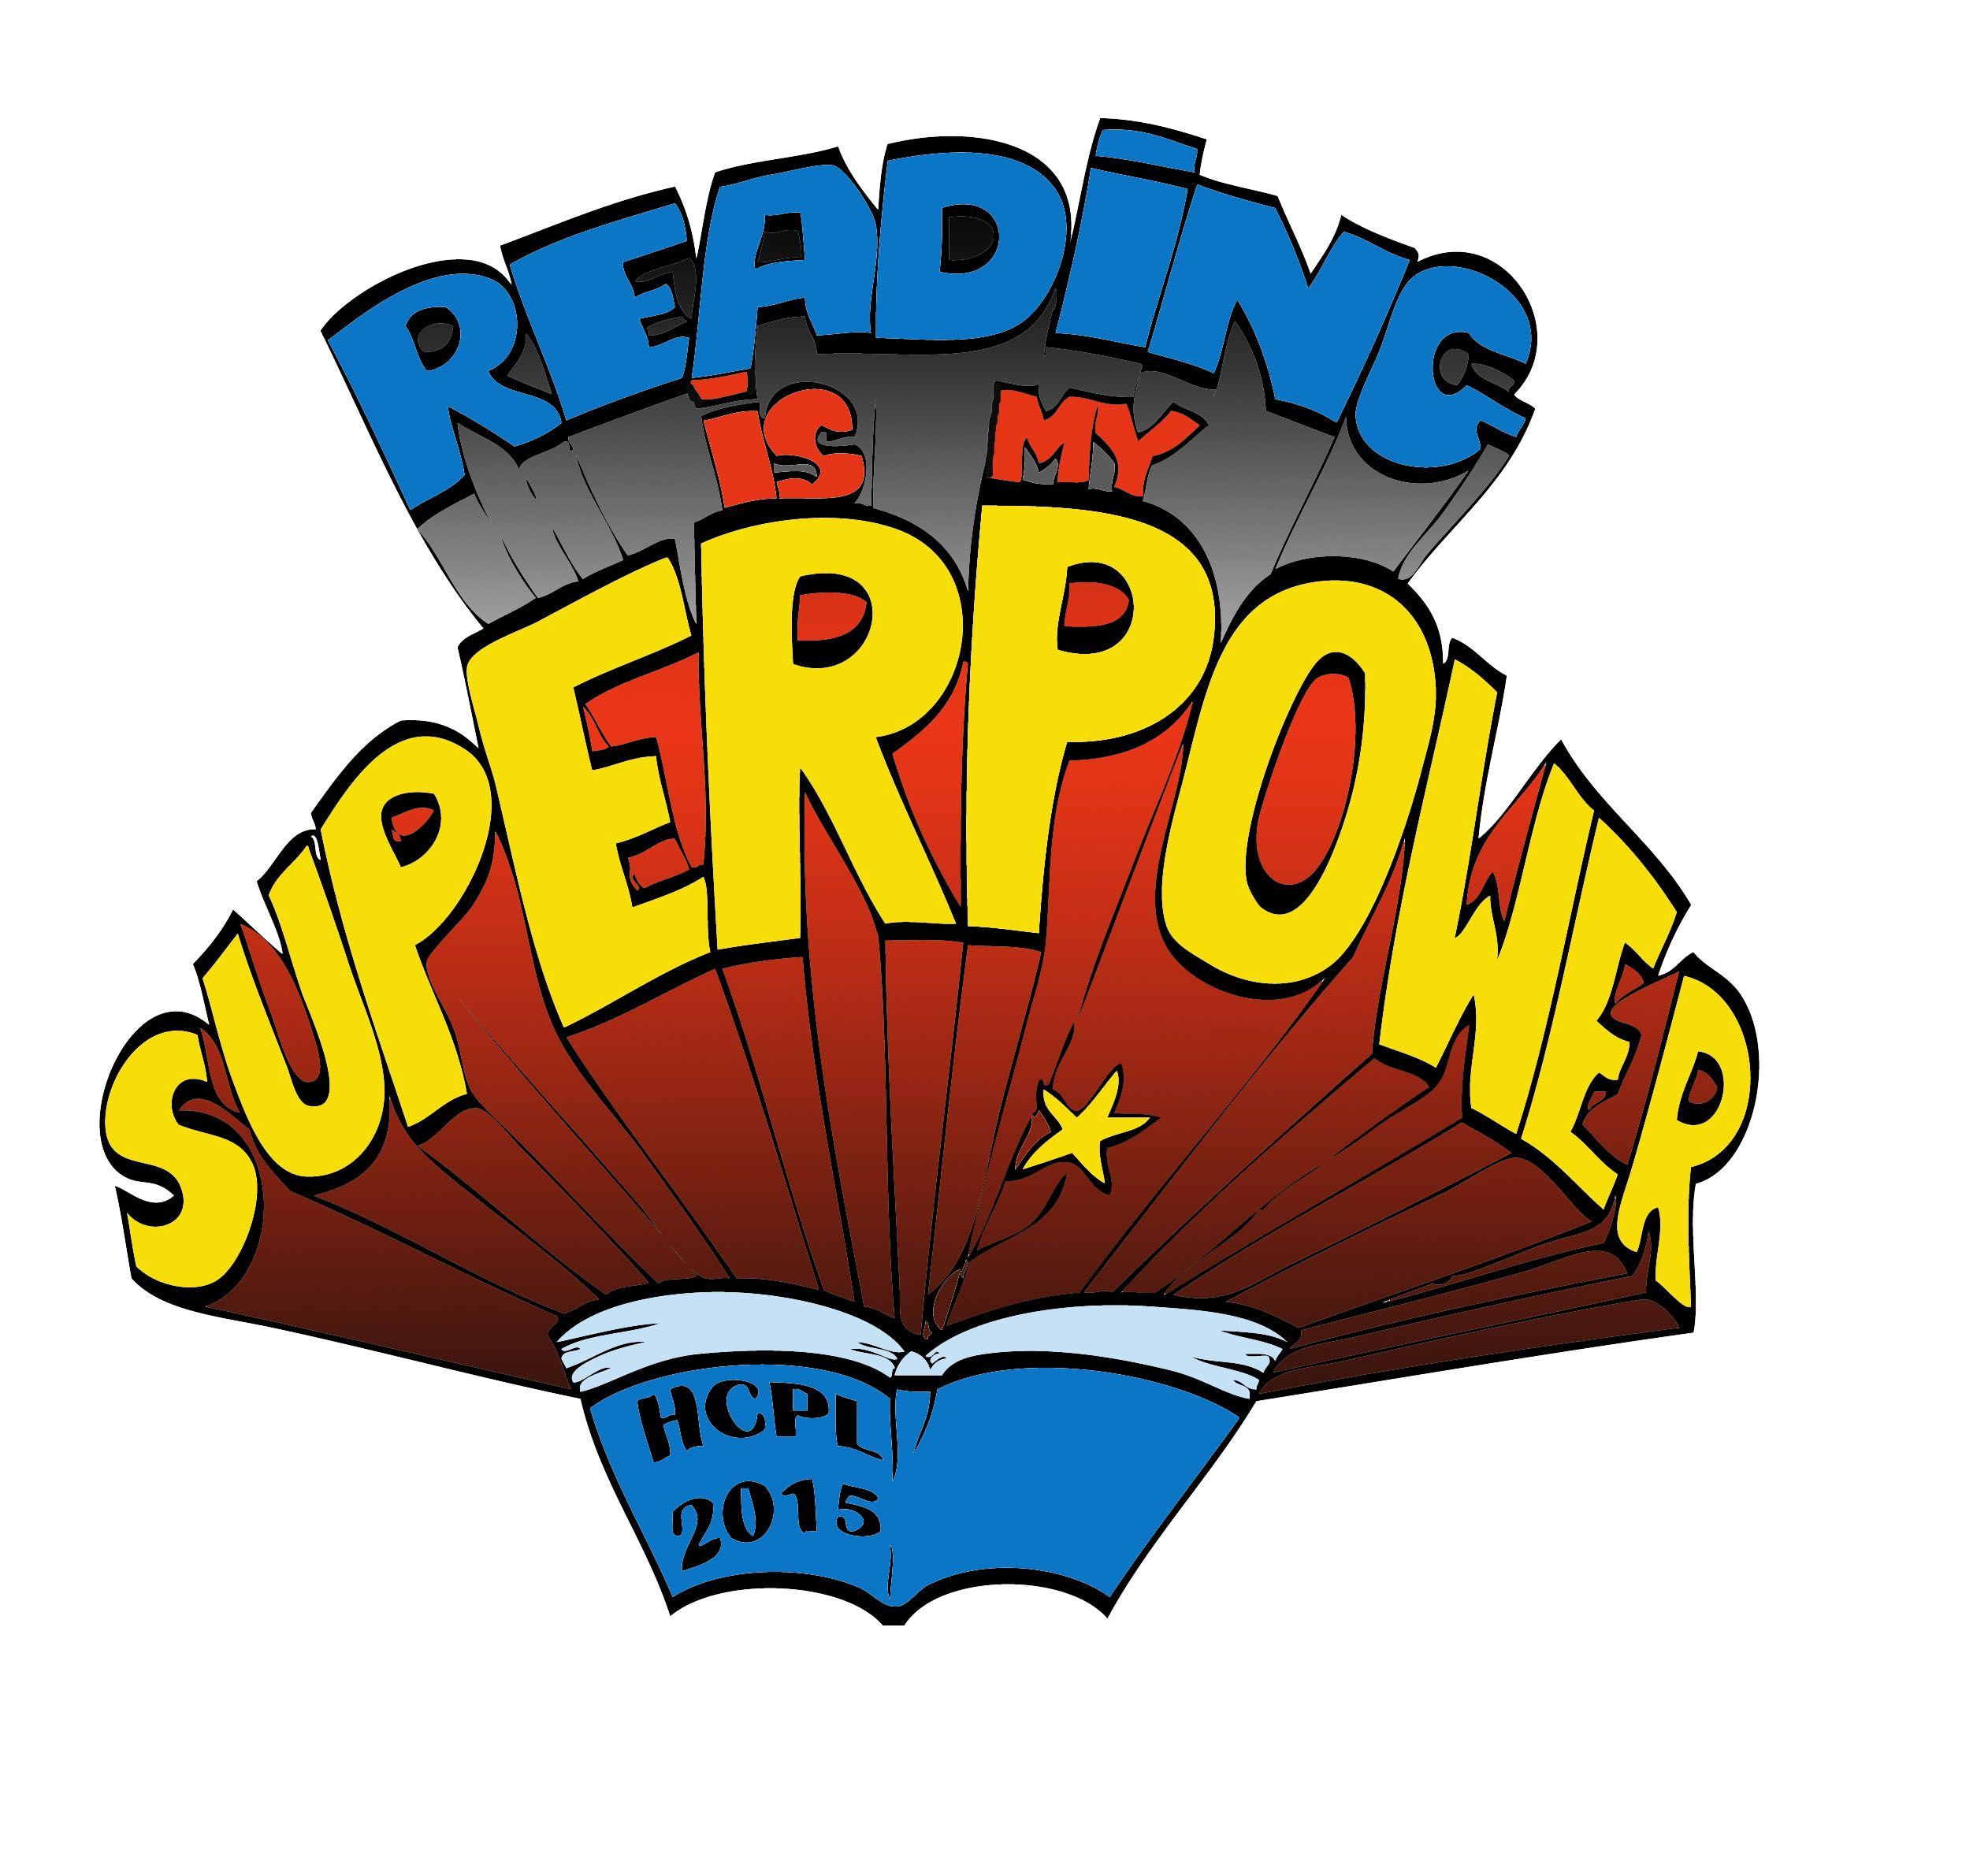 Reading Is My Superpower Color 0 Jpg 2509 2381 Library Book Displays Superhero Classroom Theme Book Week